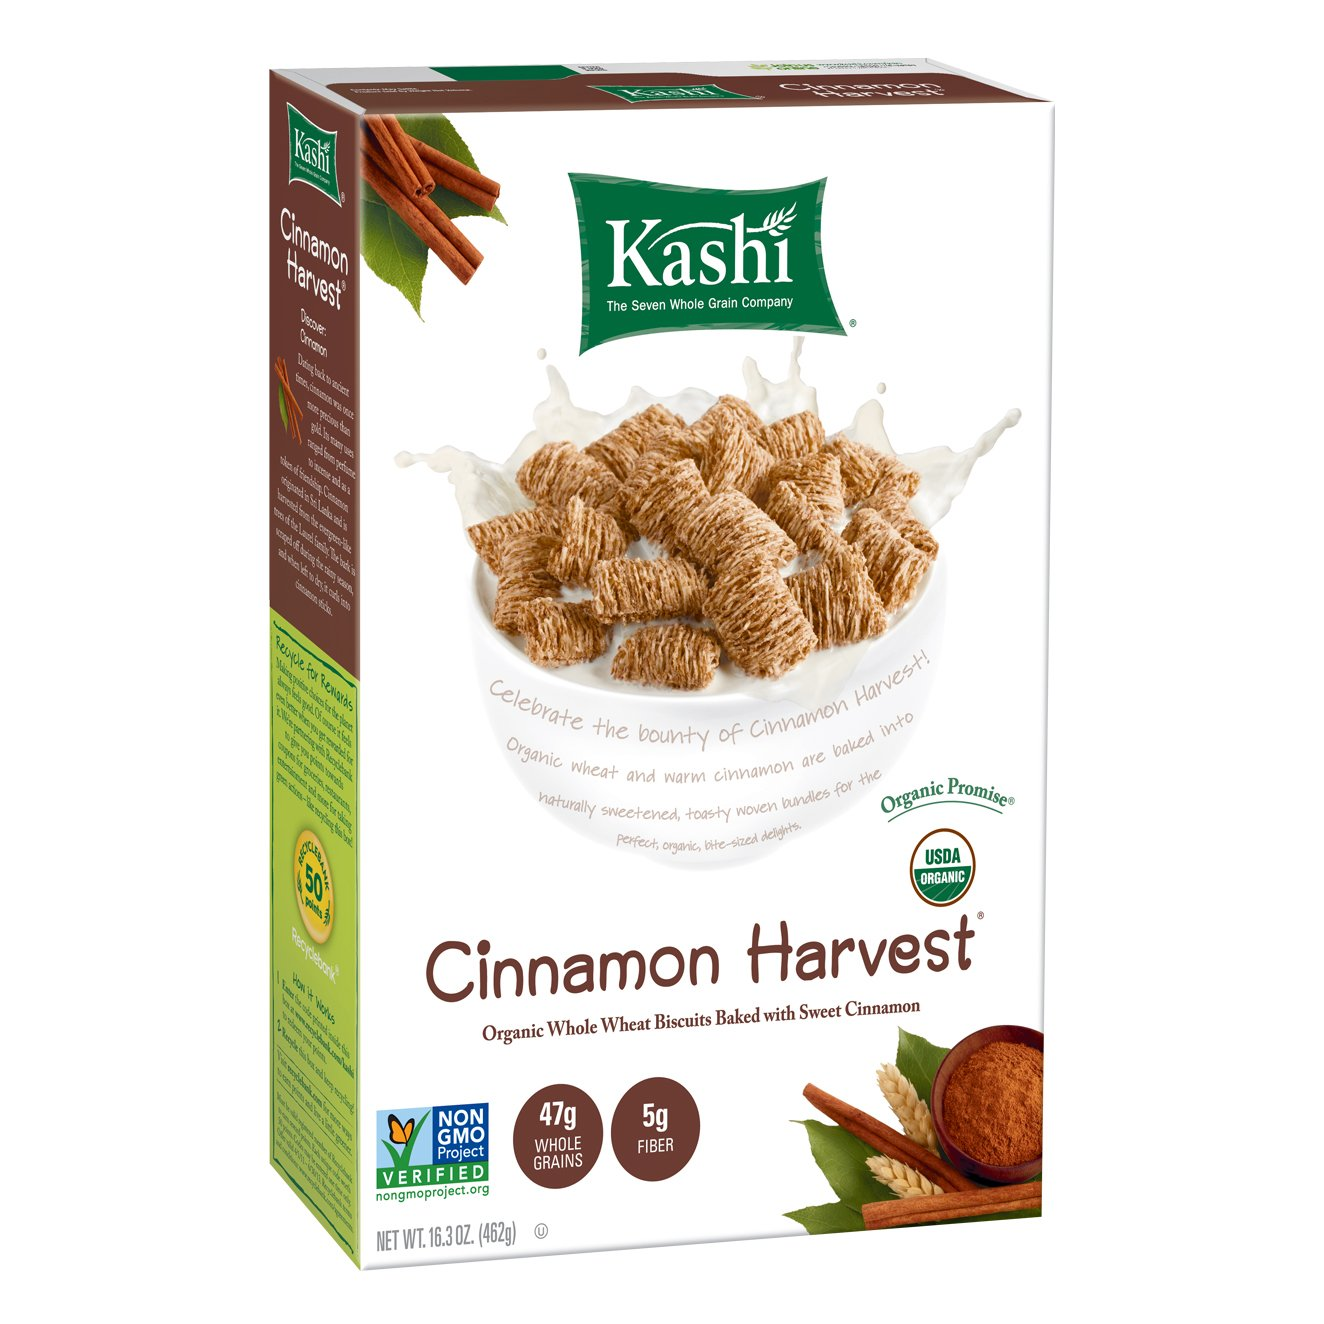 Save up to 30% on Kashi